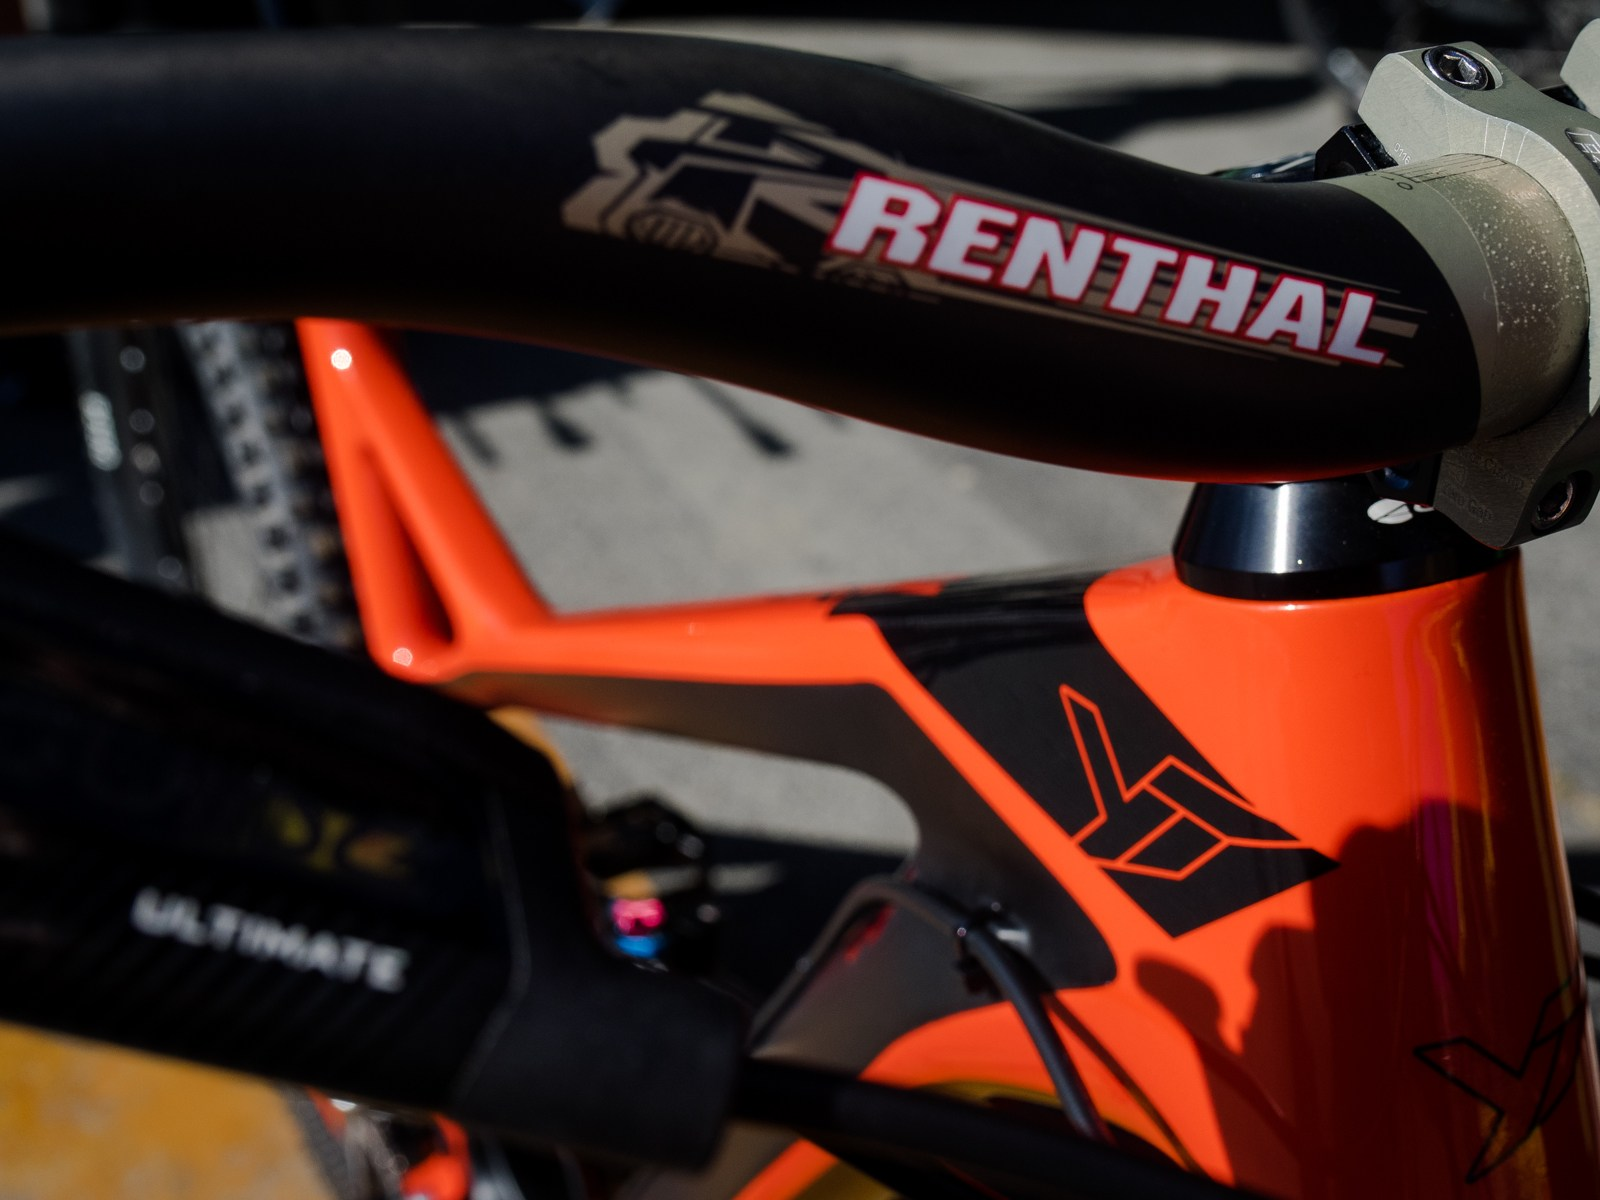 Renthal cockpit parts keeping things braaaap.